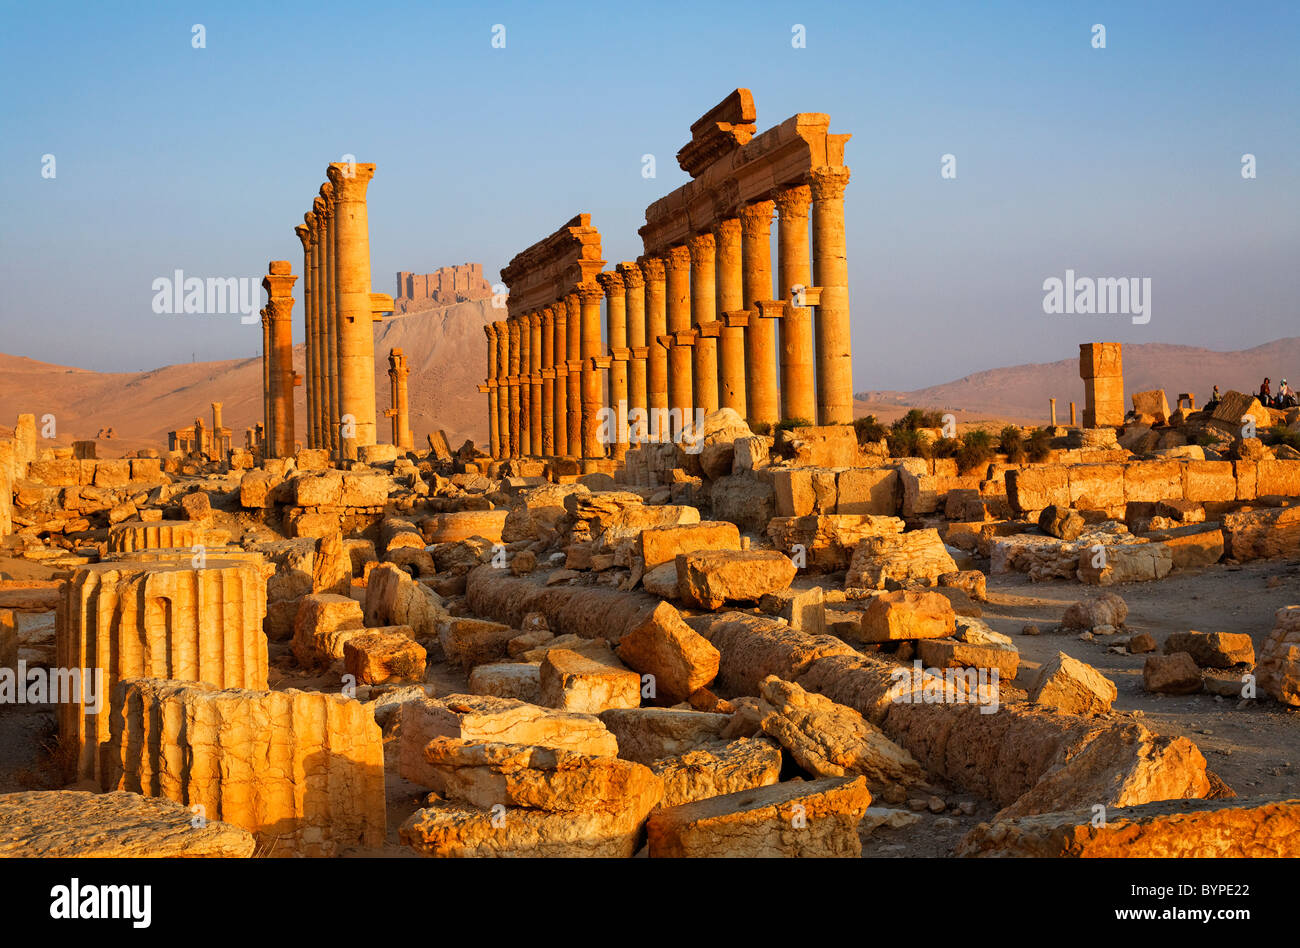 The Colonnaded Street and the Arab Castle, Palmyra, Syria - Stock Image